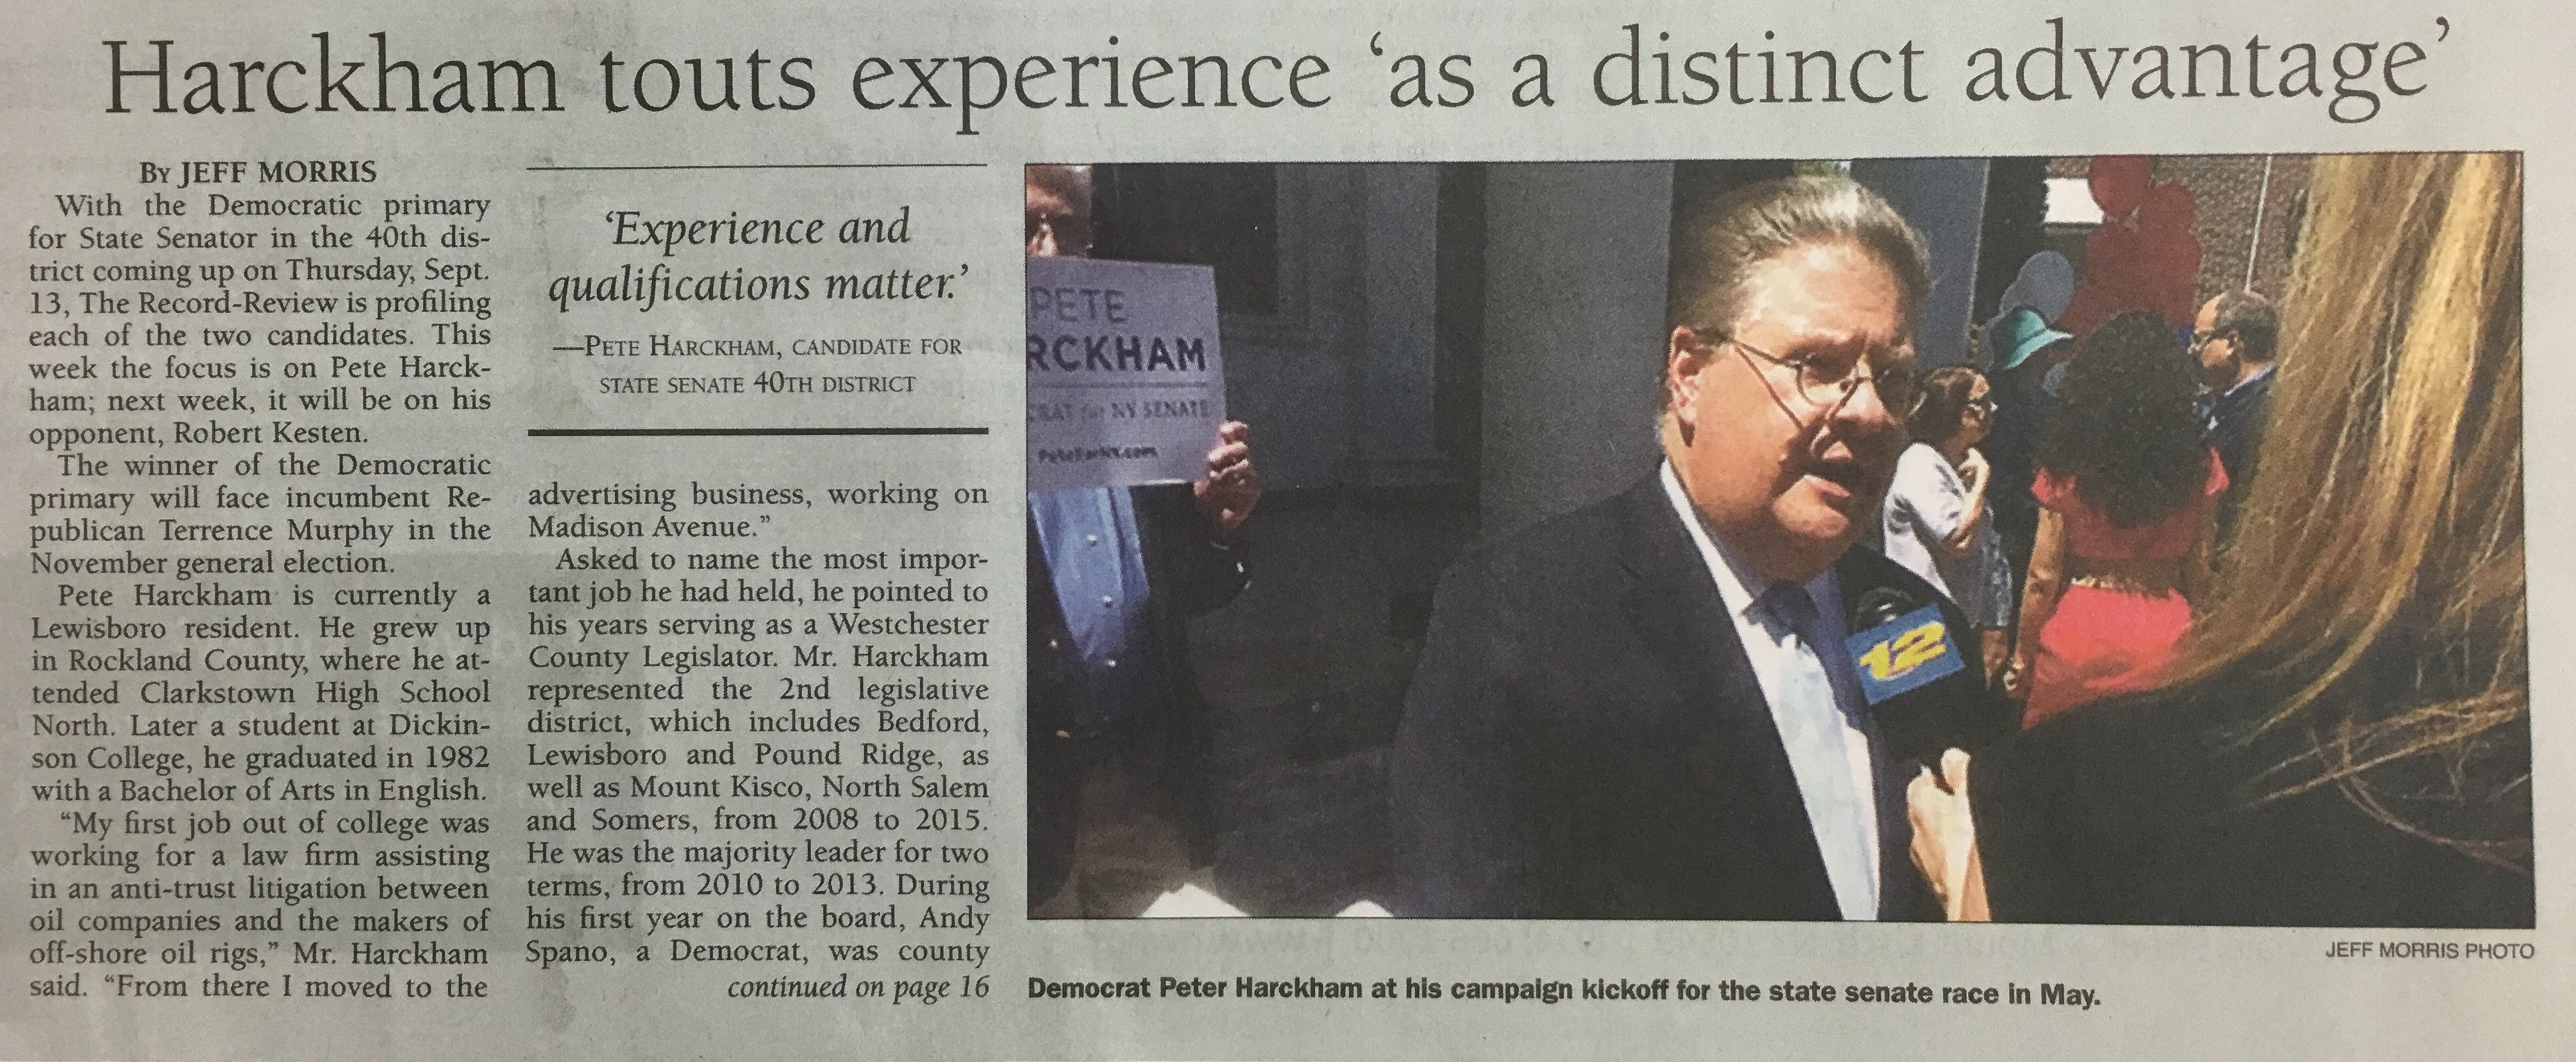 """Harckham touts experience 'as a distinct advantage'"""